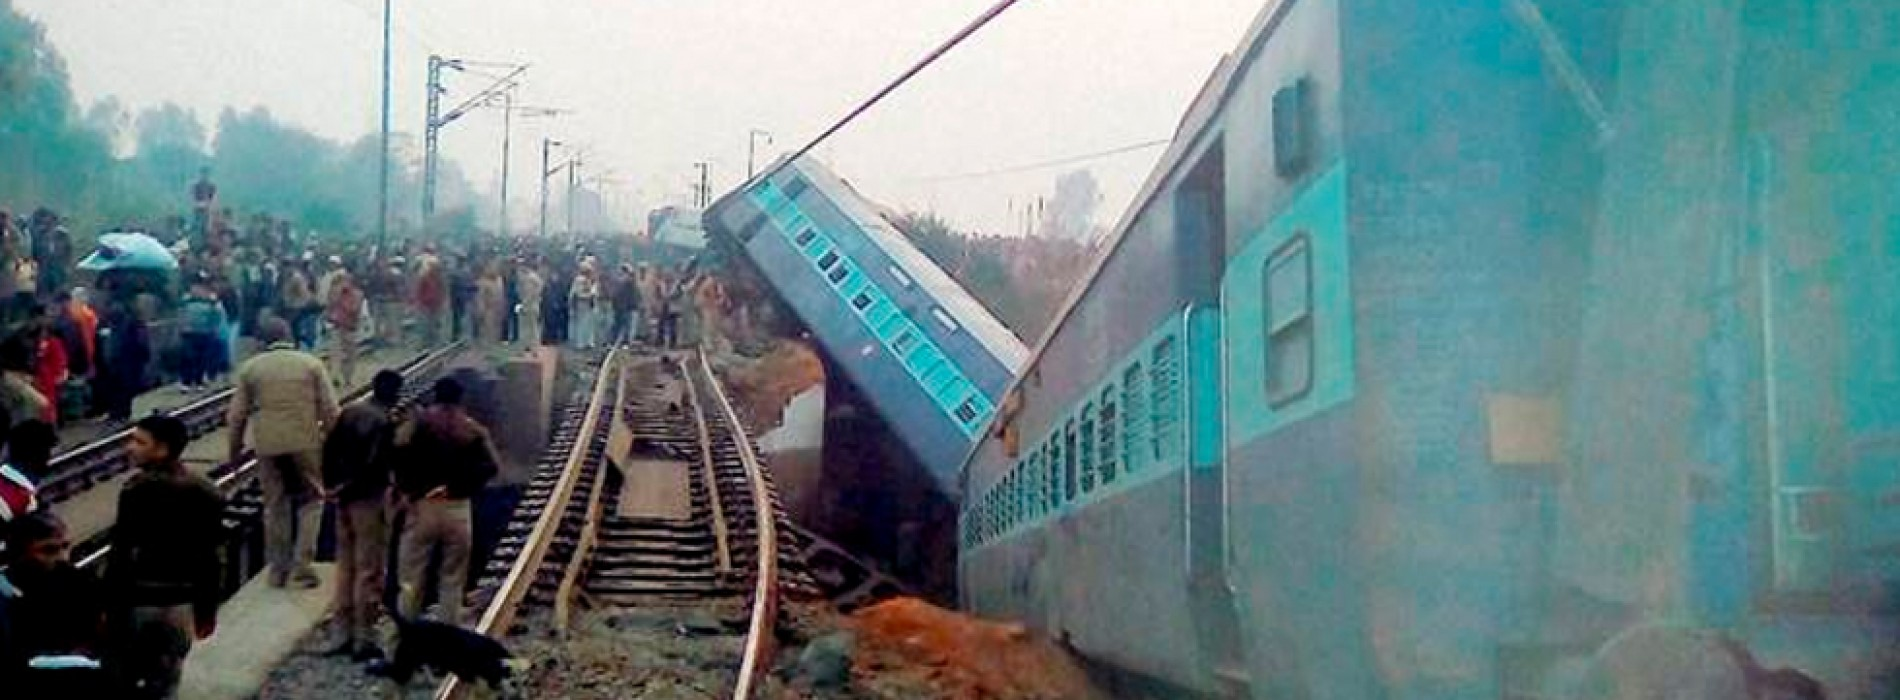 Villagers avert major train accident in West Bengal